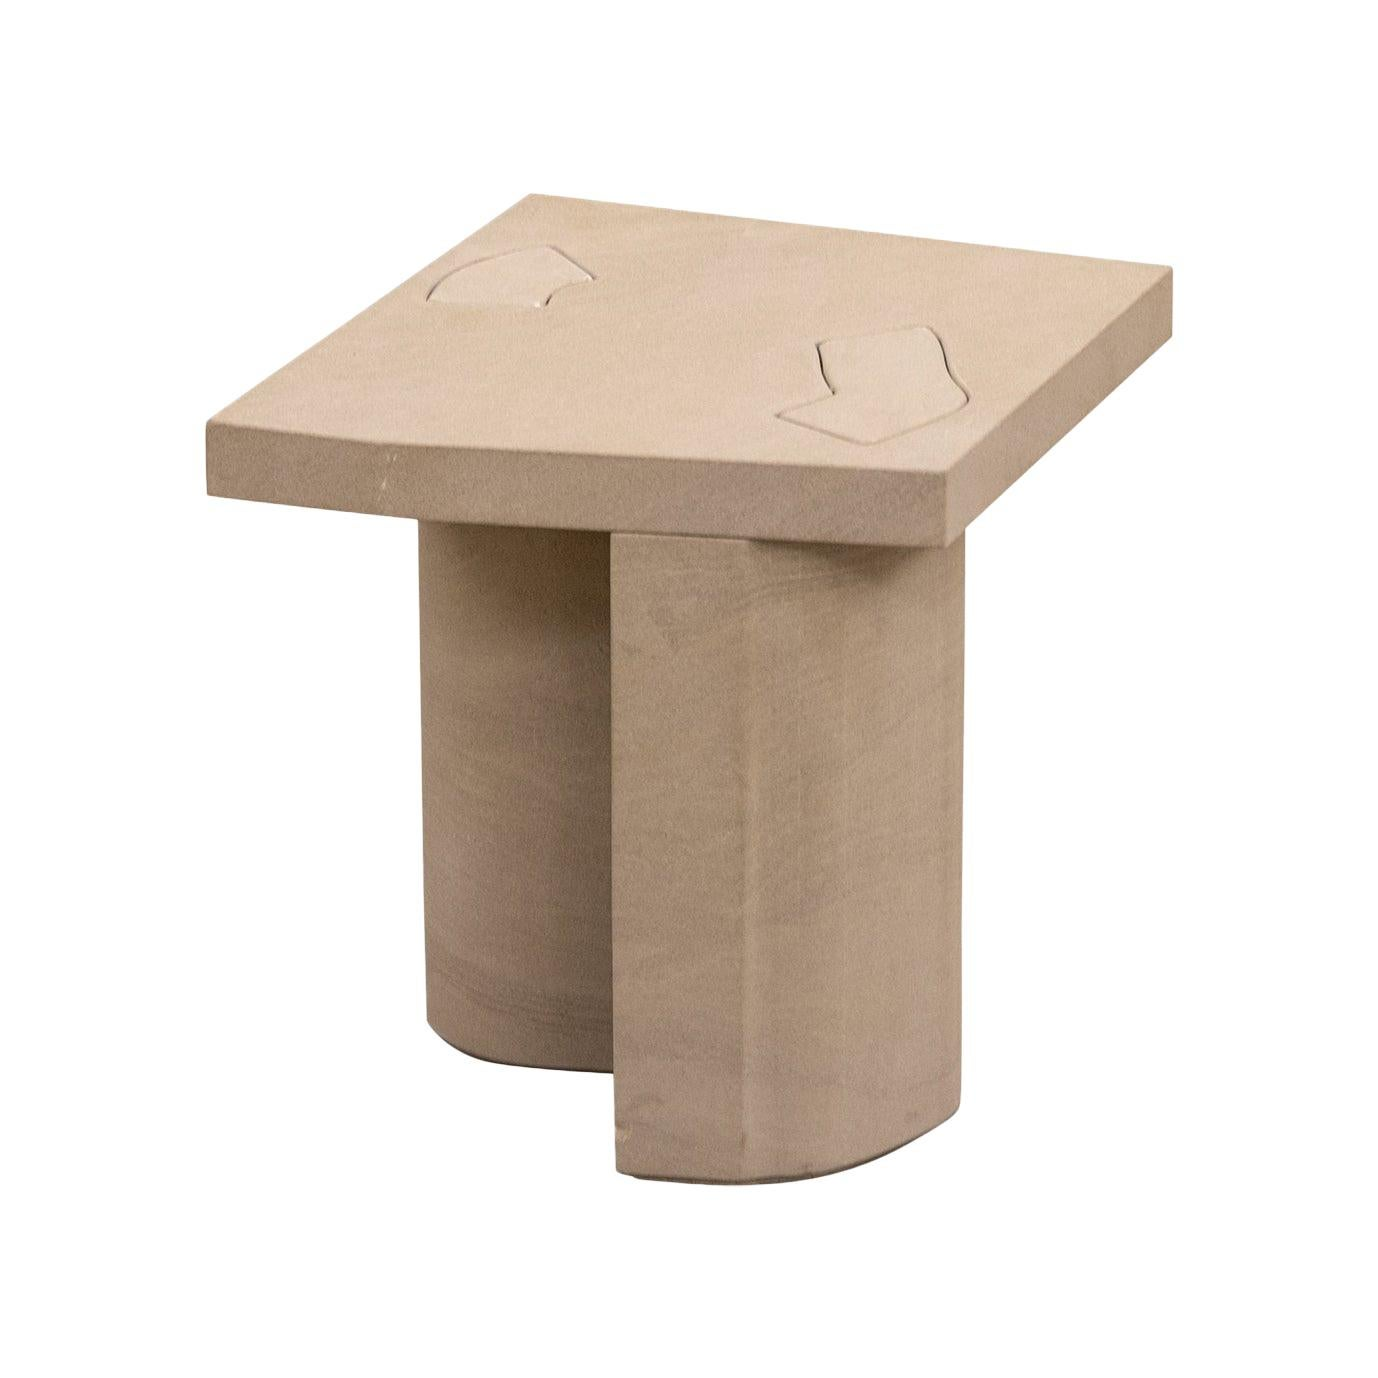 Unsighted Table 3 by Bahraini-Danish in Giallo Avorio Marble